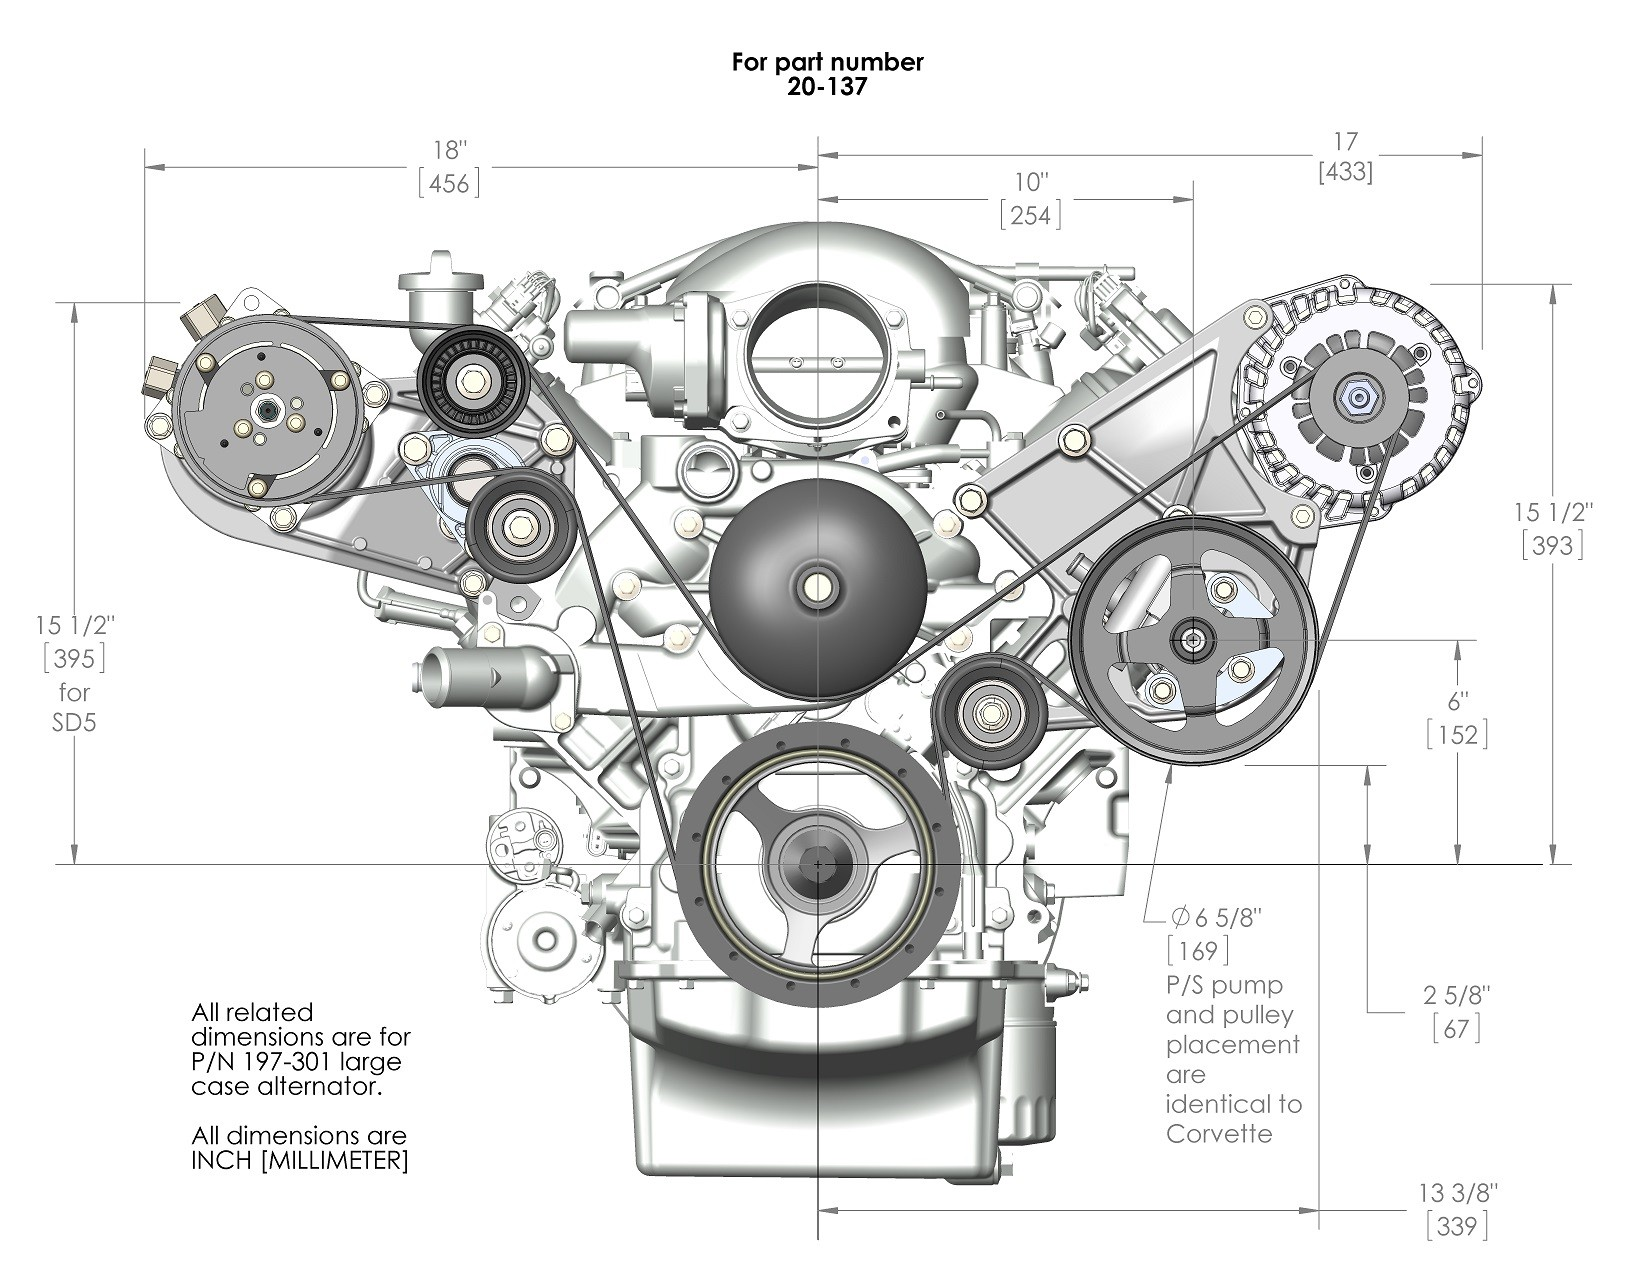 4 3 Vortec Engine Diagram 20 137 Dimensions1 1650—1275 Ls Engines Pinterest Of 4 3 Vortec Engine Diagram